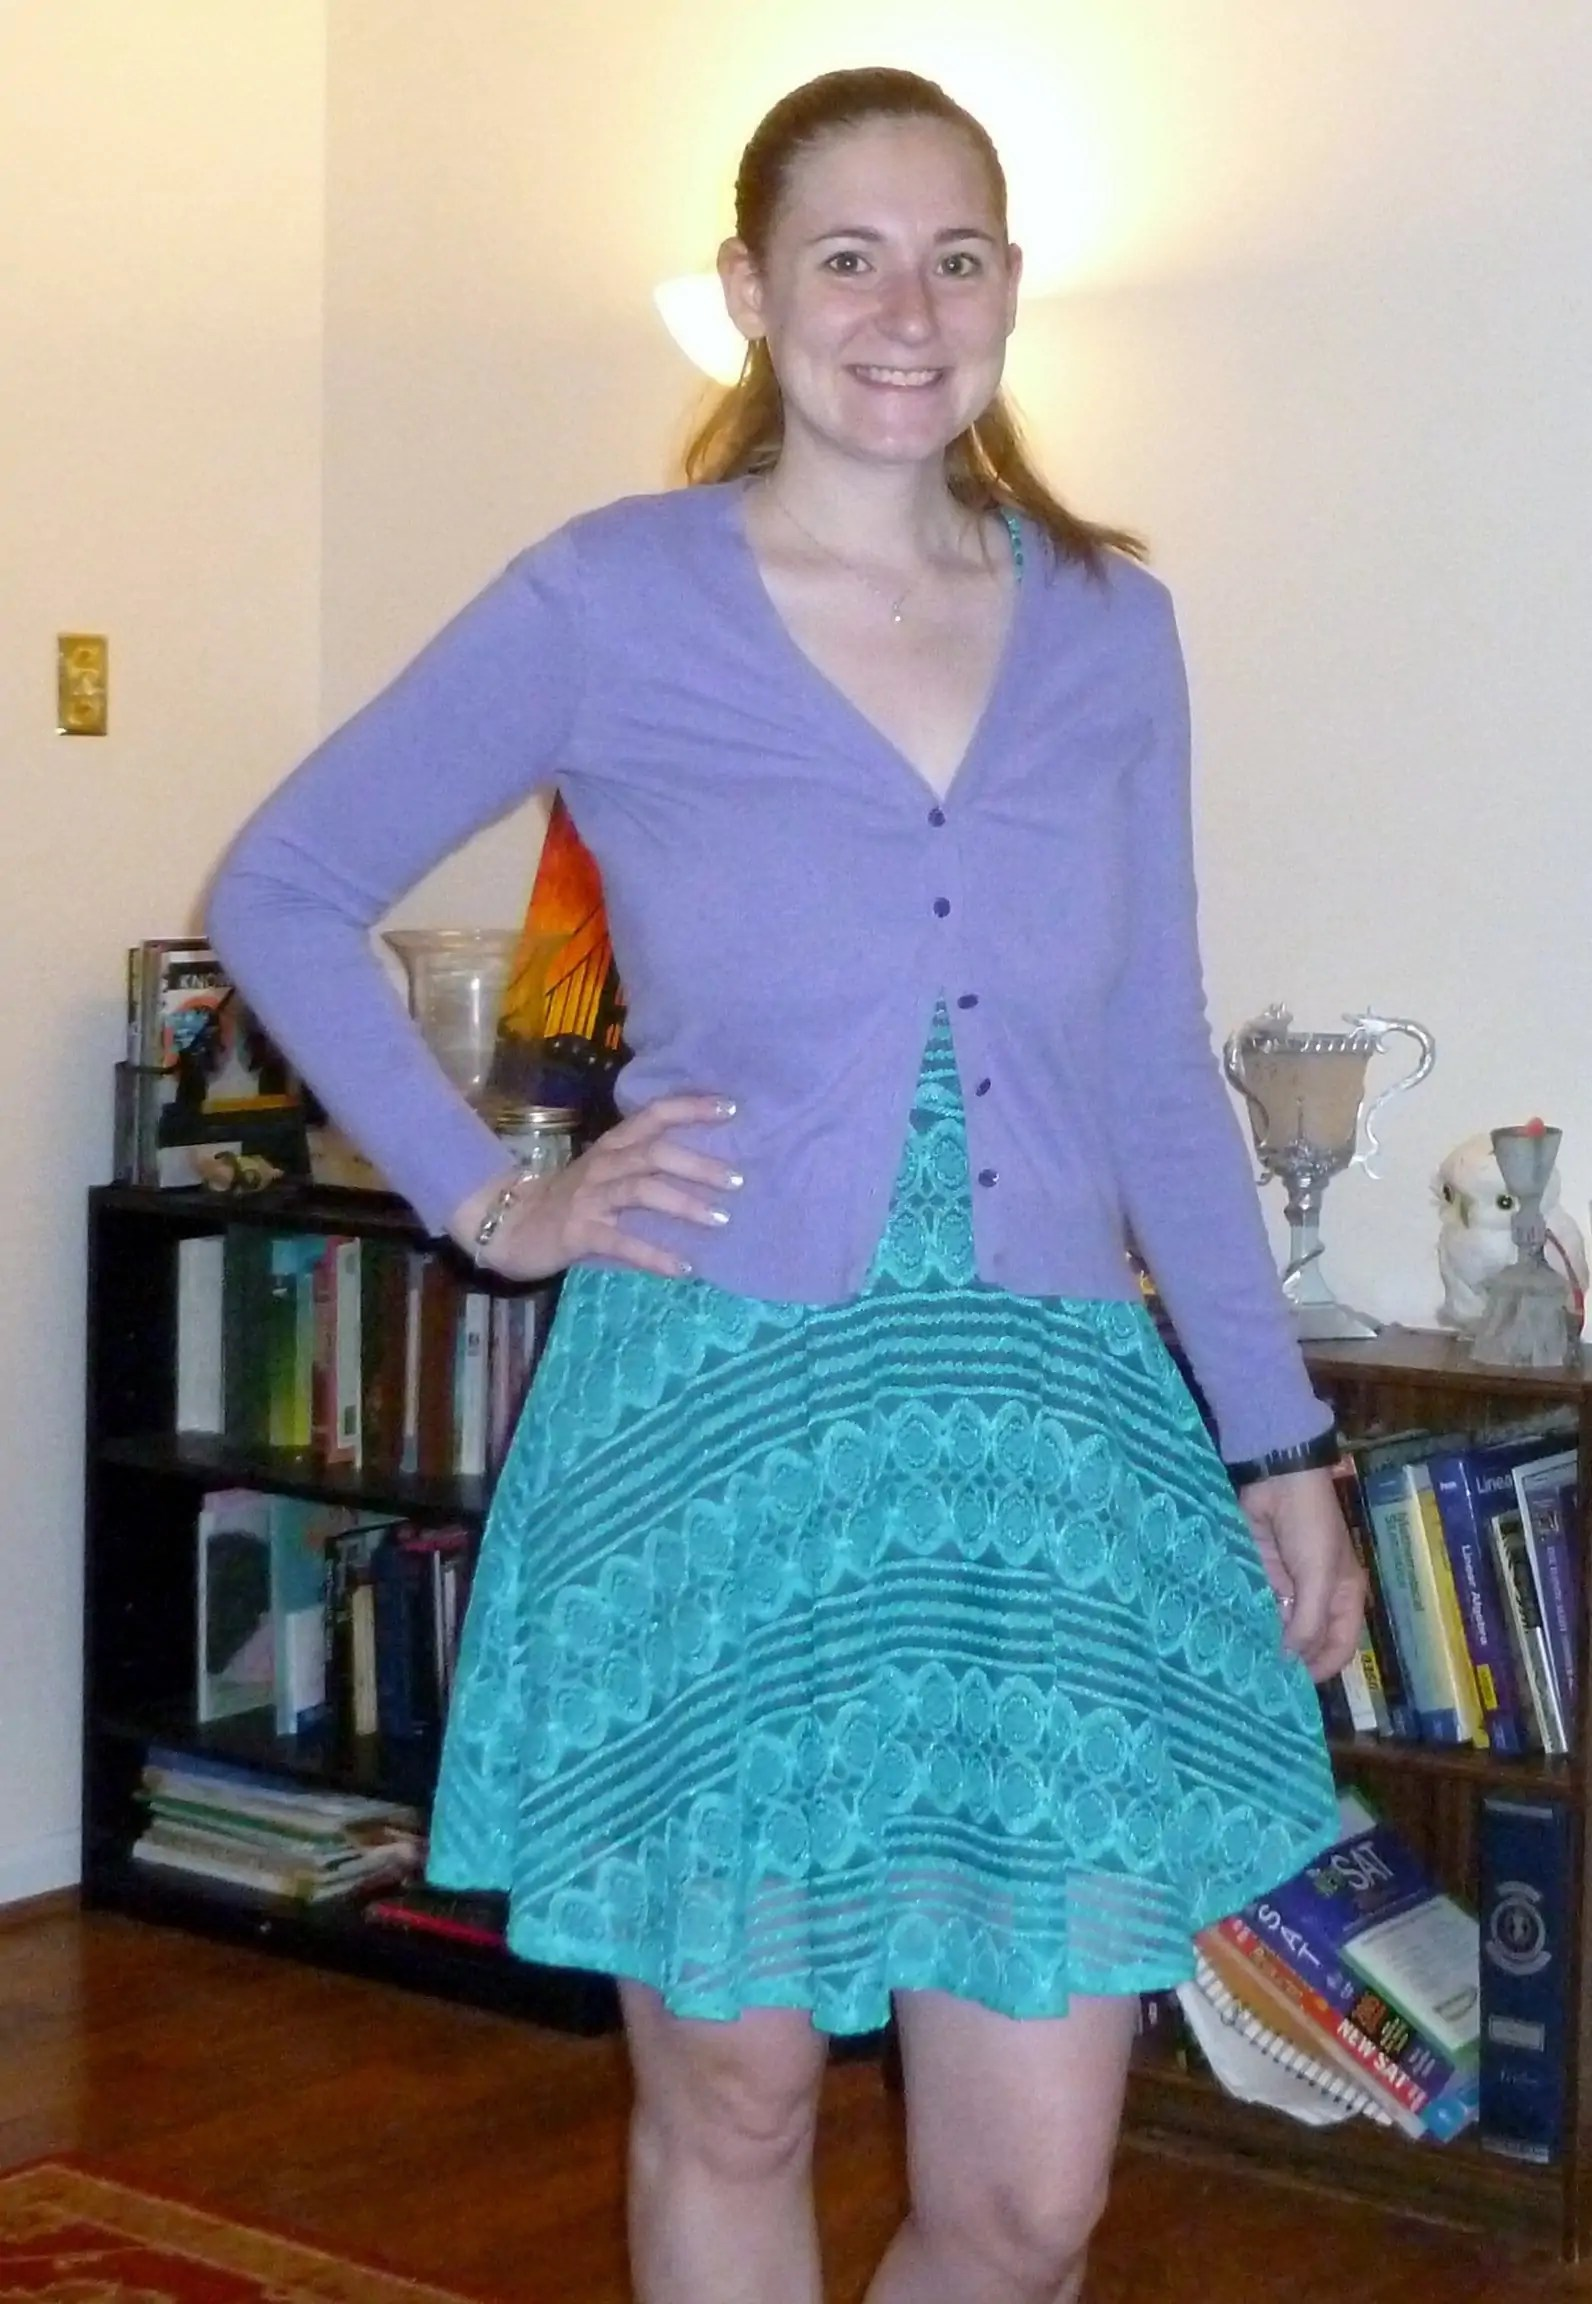 The dress ariel wore -  In Trying A Disney Bound So I Headed To My Closet To See What I Might Have Available I Decided To Go With An Ariel Disney Bound I Wore A Green Dress